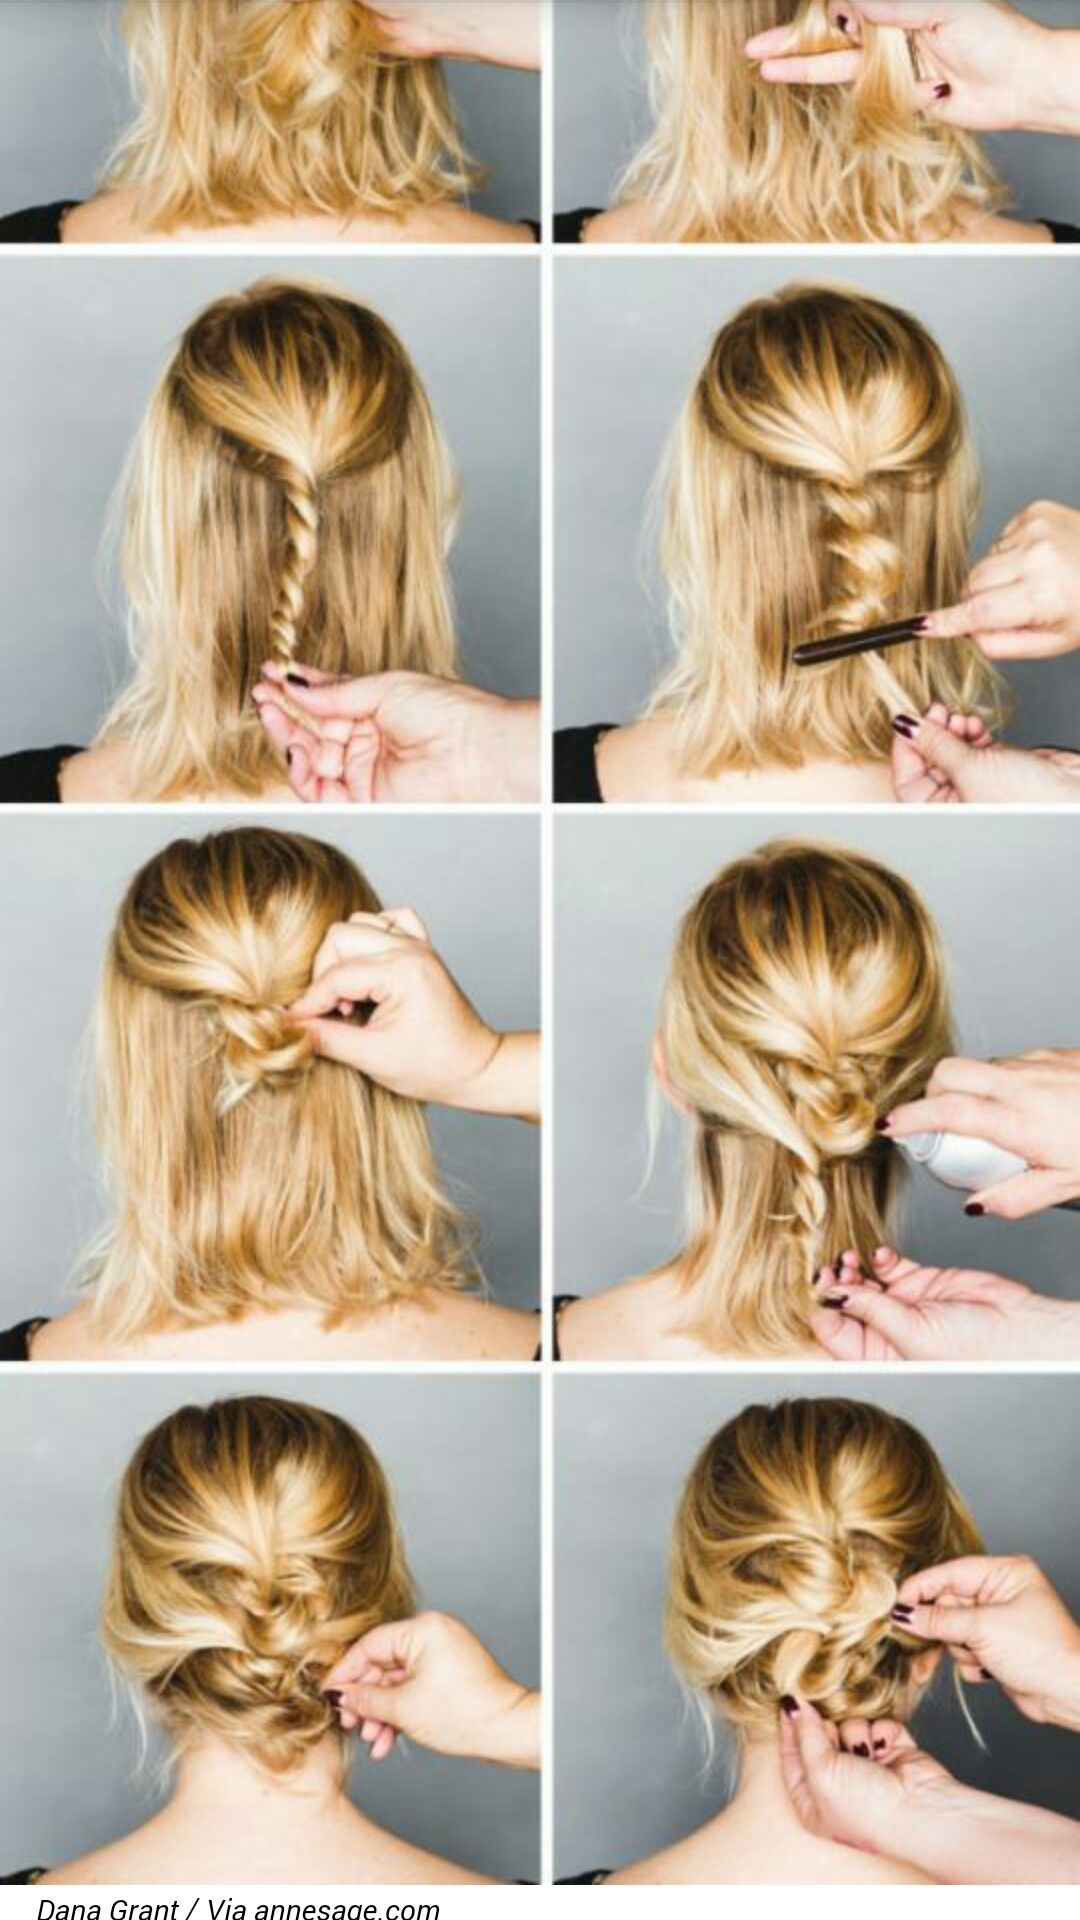 Pin by annelise hayden on fashionuhairubeauty pinterest hair and